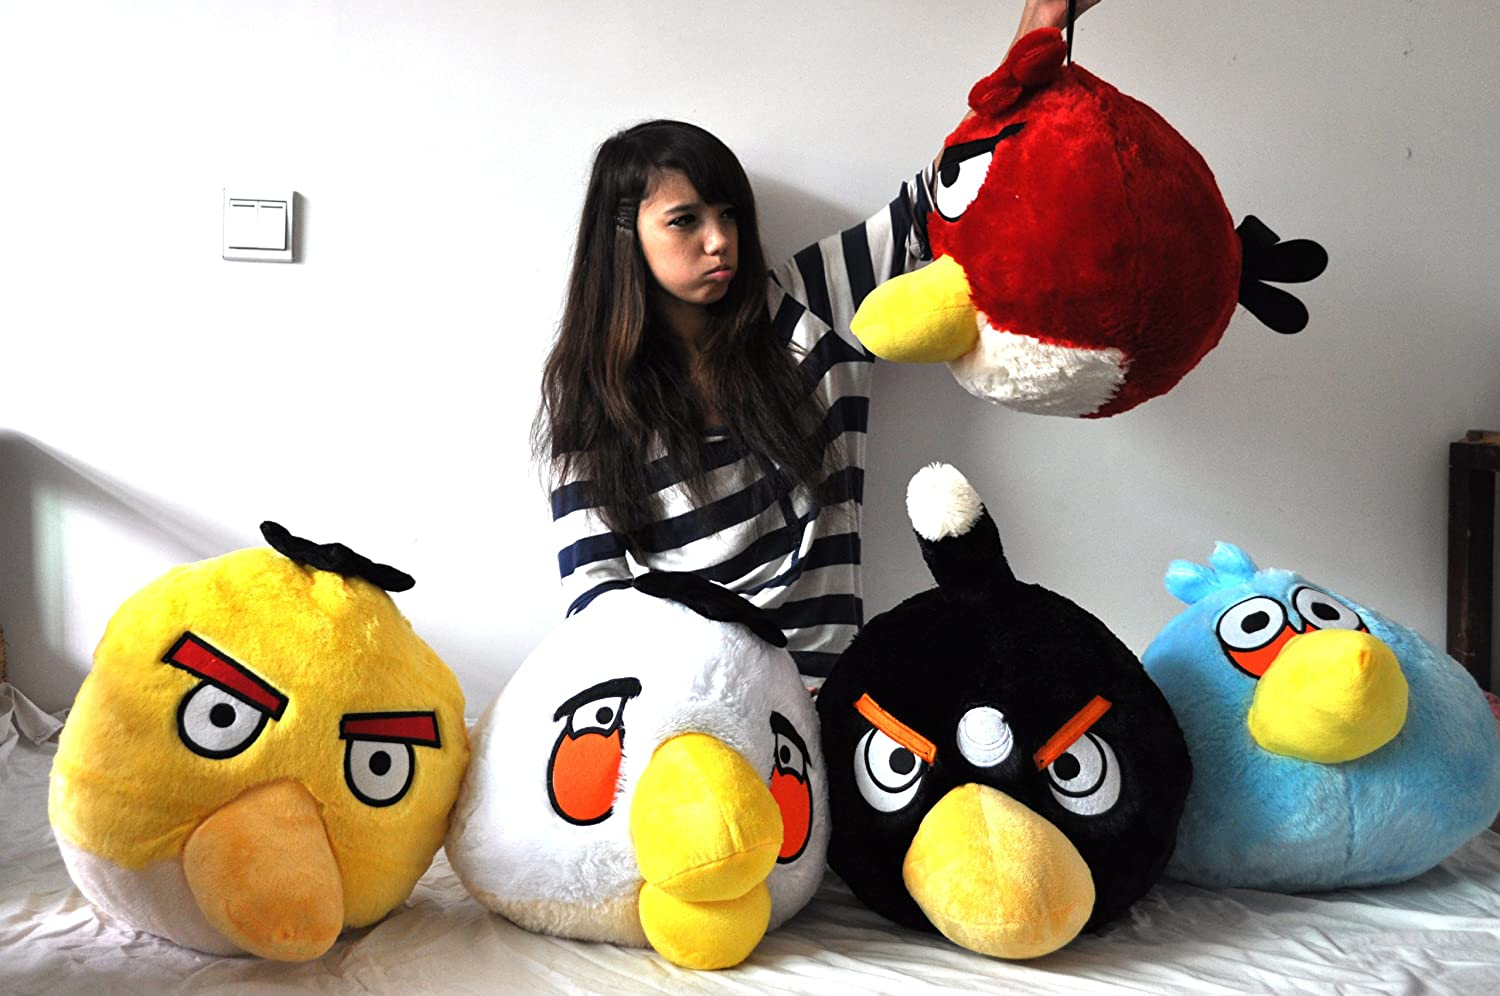 Giant Big Size Rare 50 Cm / 20 Inch Angry Birds Classical 5 Colors Red  Black White Blue Yellow Bird Plush Doll Toy: Amazon.co.uk: Toys & Games